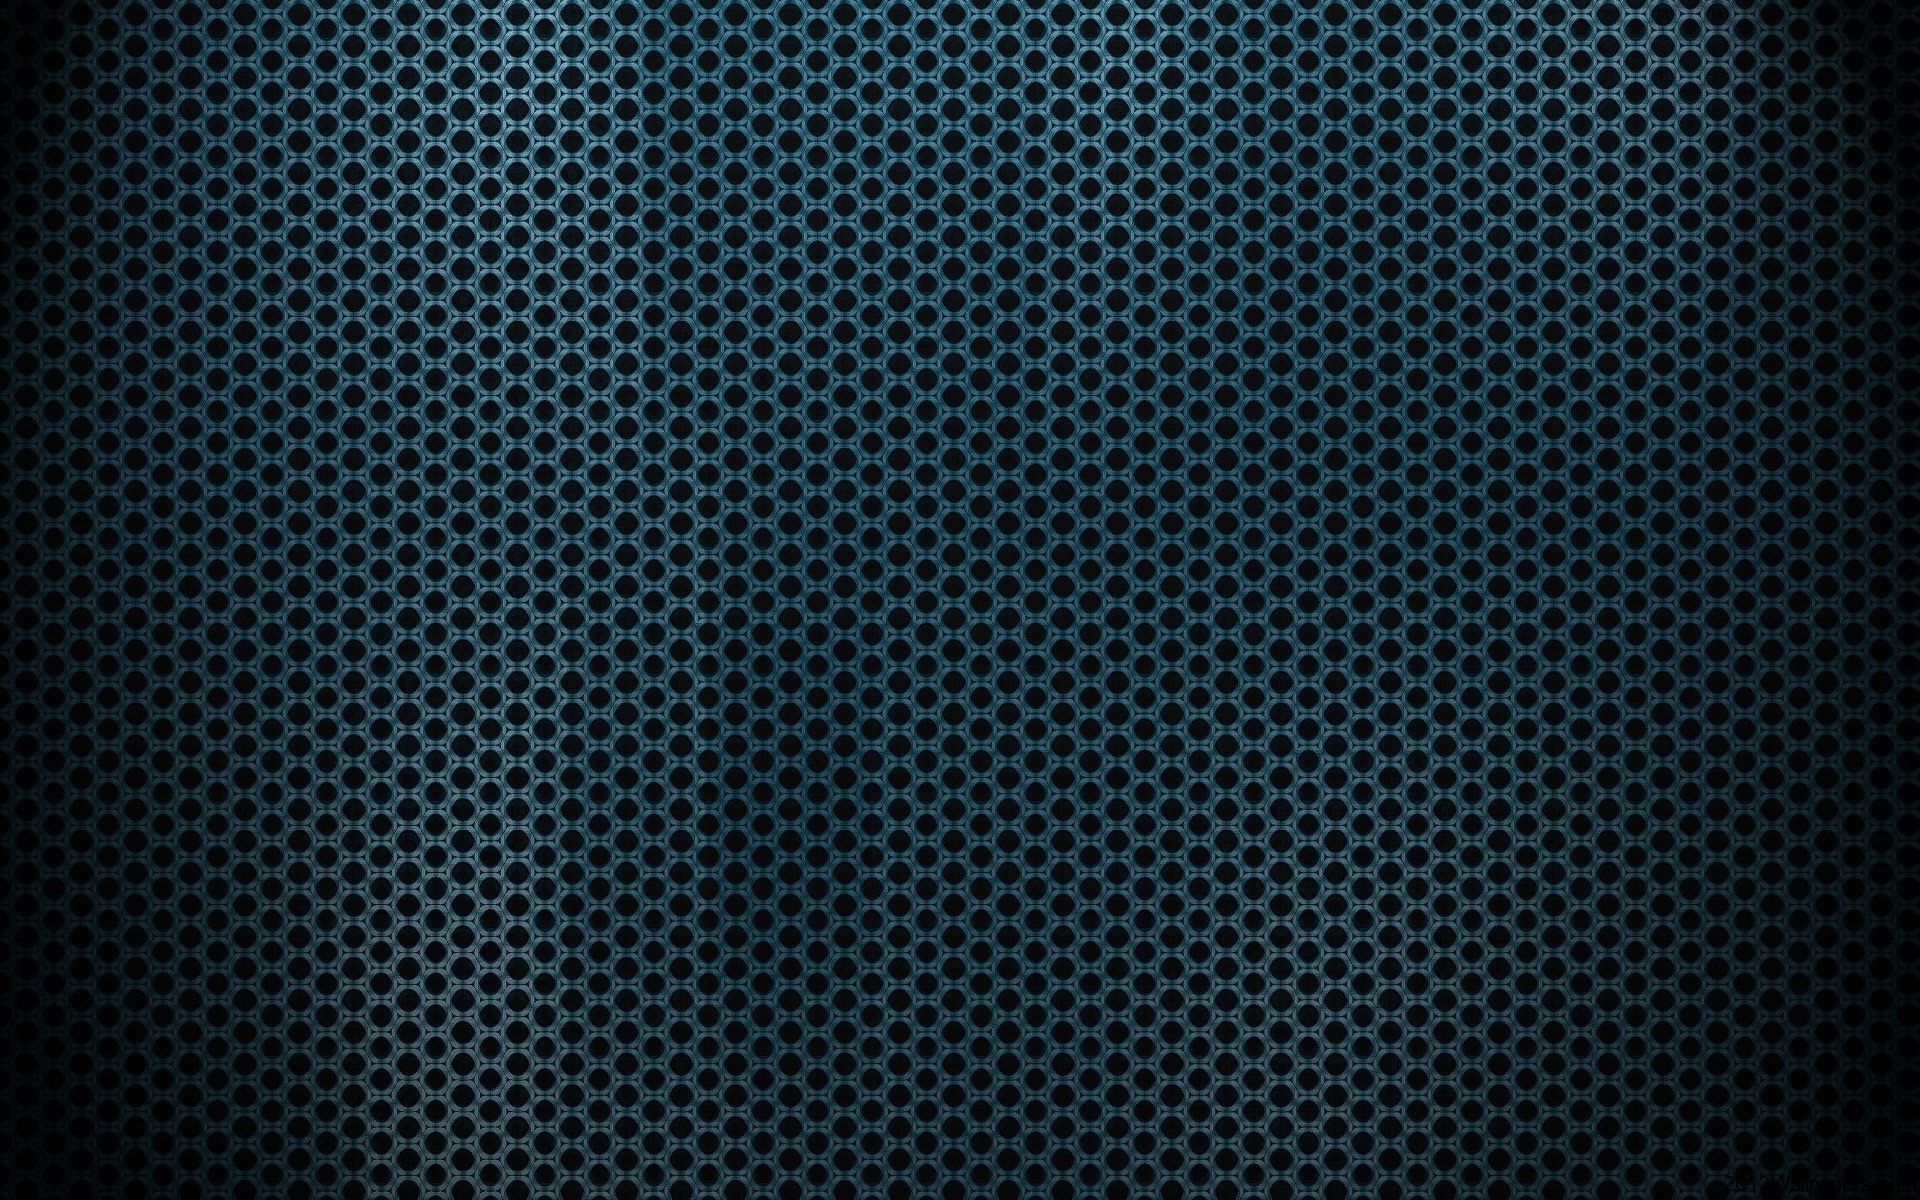 Plain blue wallpaper Group 1366×768 Plain blue wallpaper (37 Wallpapers) |  Adorable